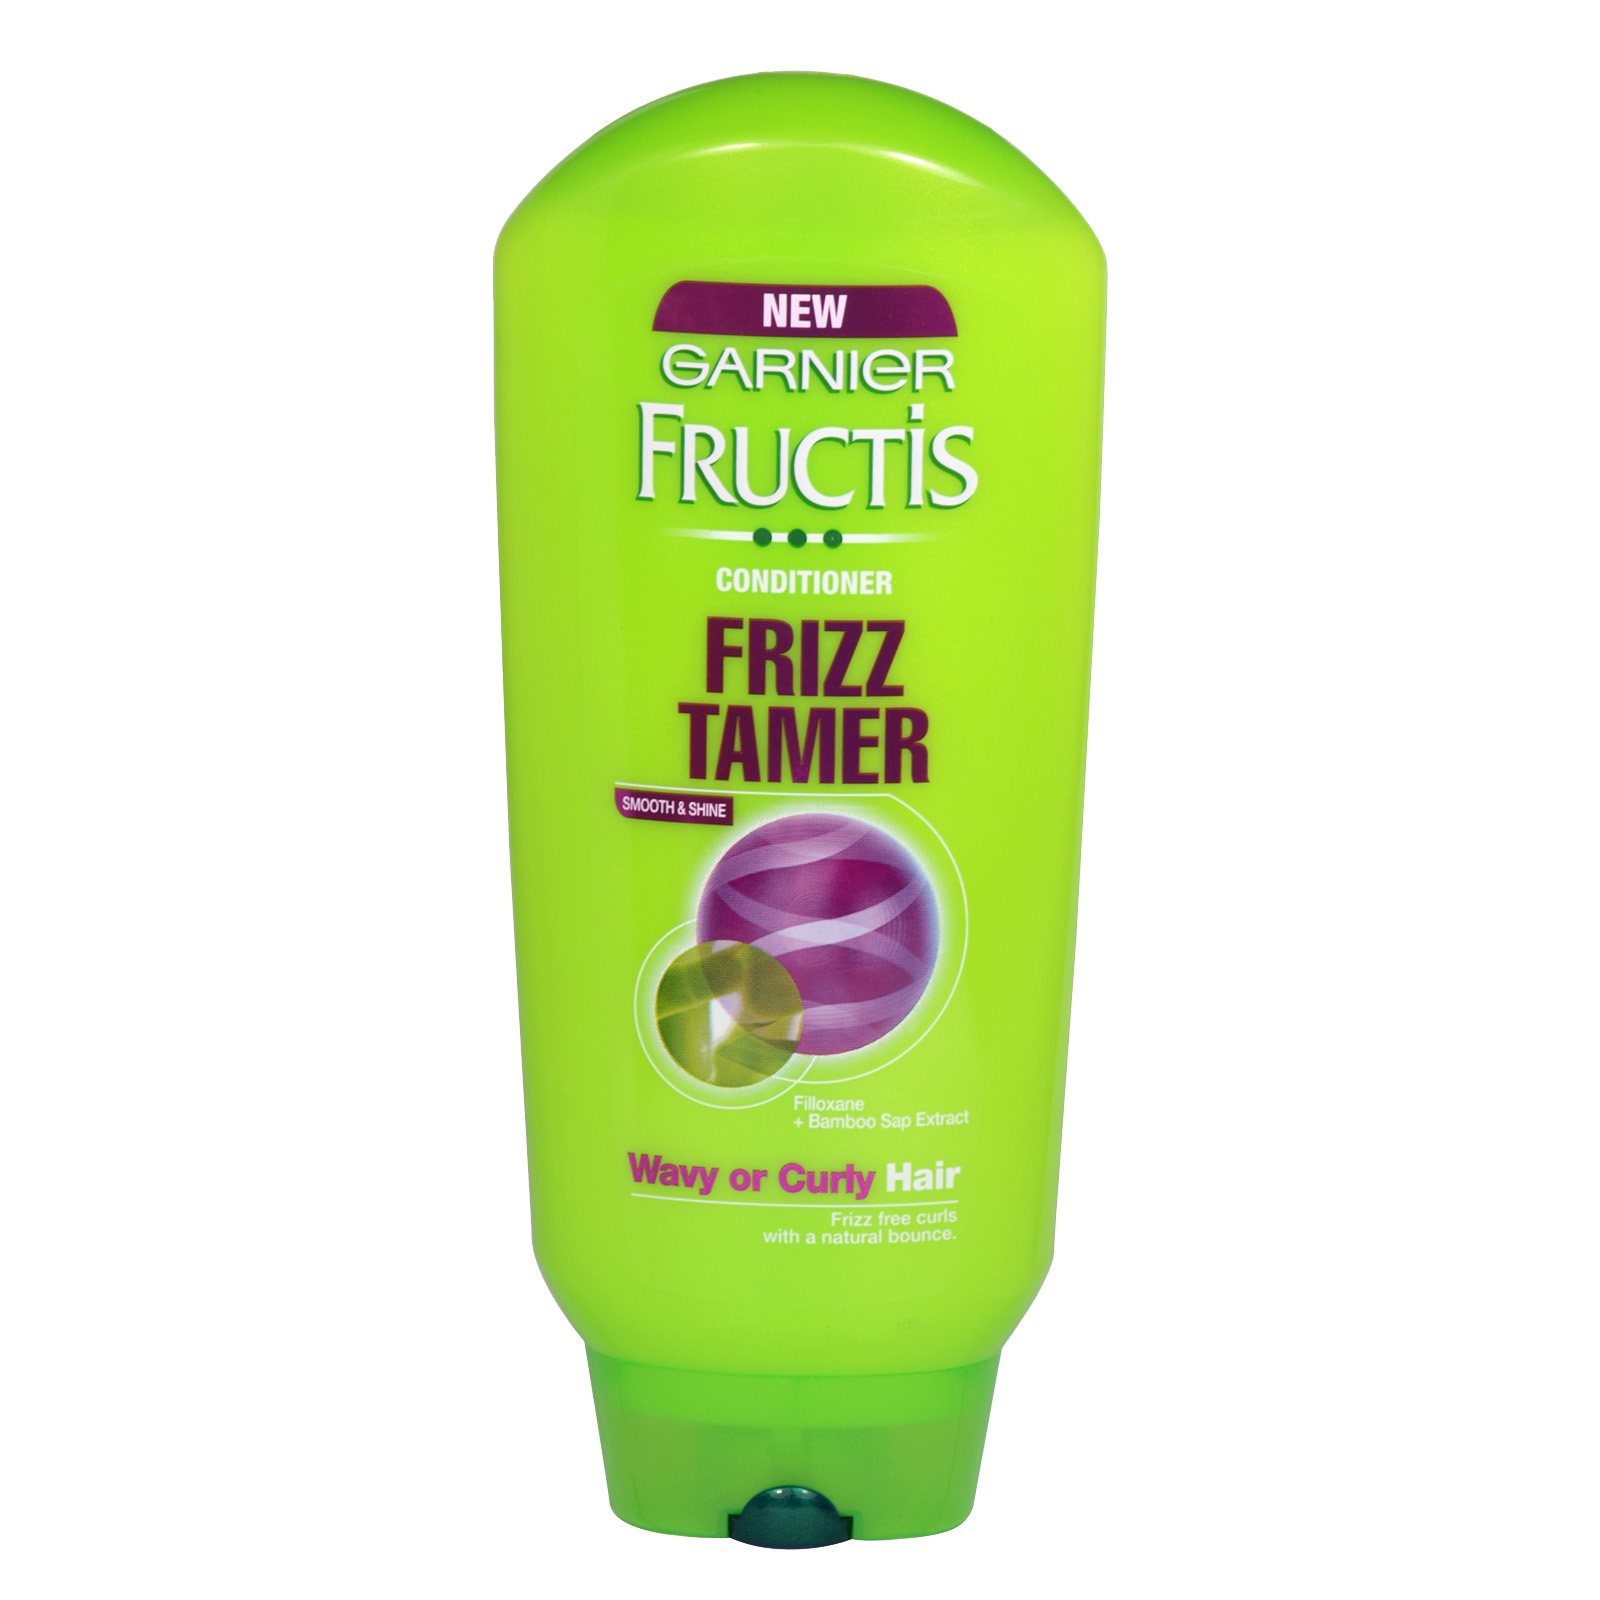 GARNIER FRUCTIS CONDITIONER 250ML FRIZZ TAMER X6